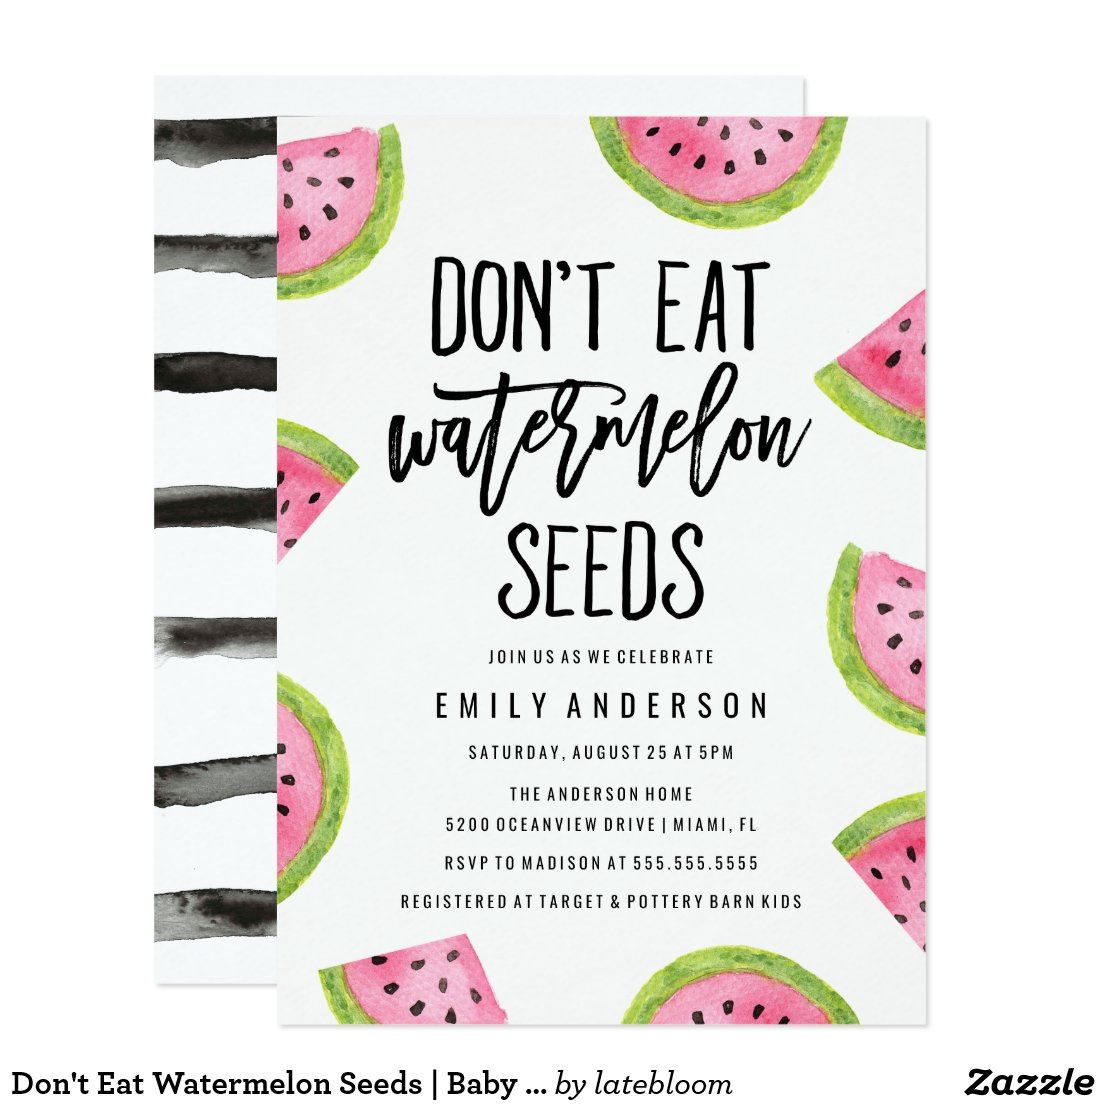 Don't Eat Watermelon Seeds | Baby Shower Card